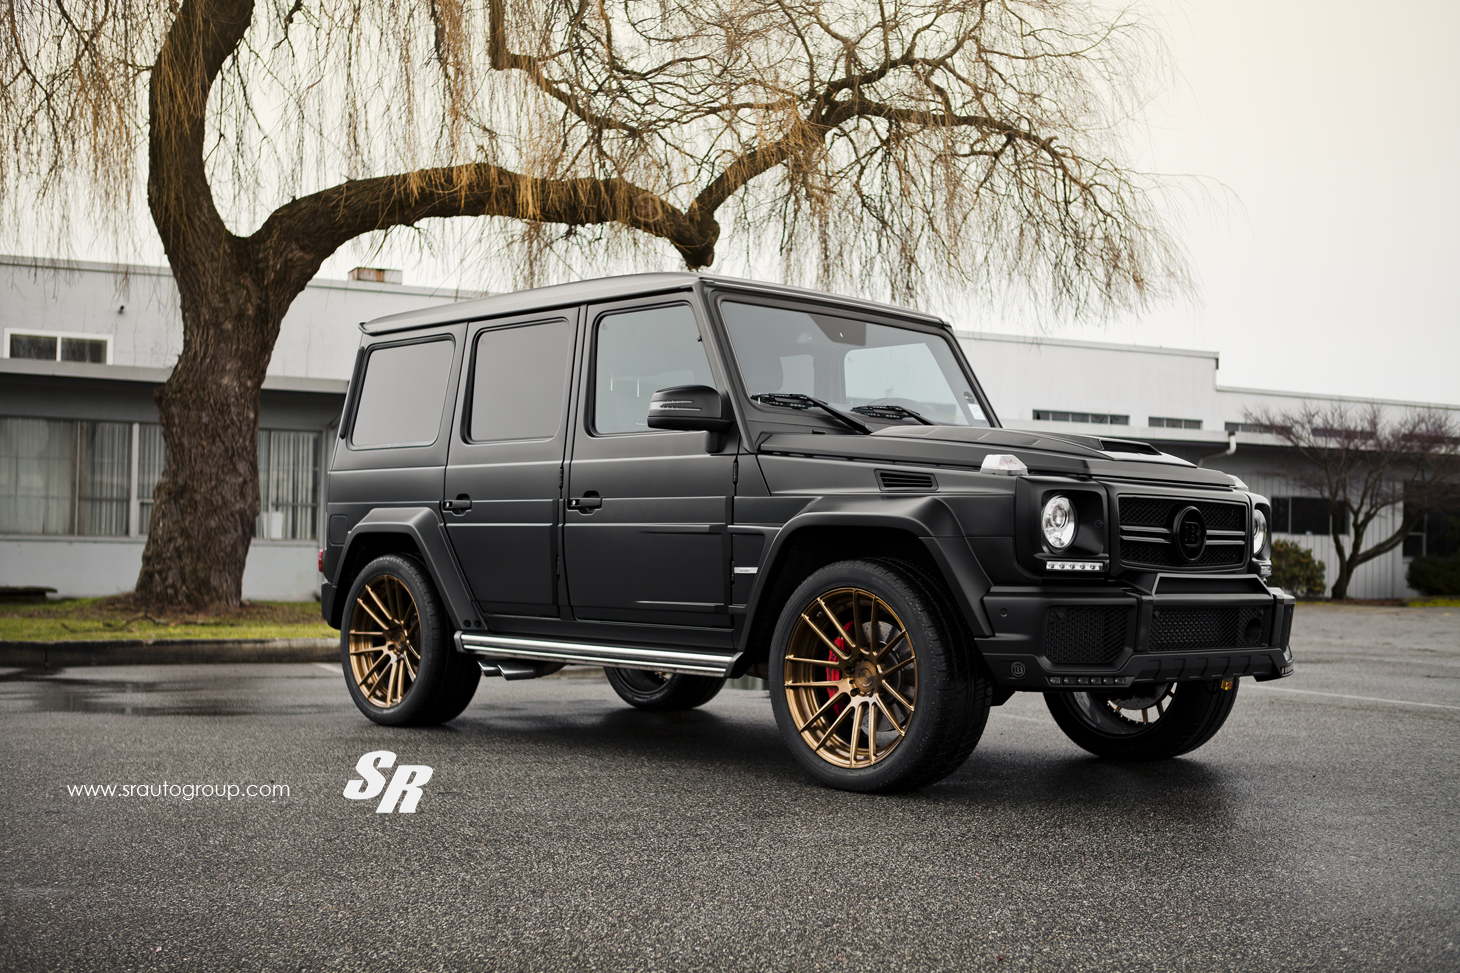 How Much To Paint A Car >> Project Gladiator: Brabus Widestar on ADV.1 Wheels - autoevolution